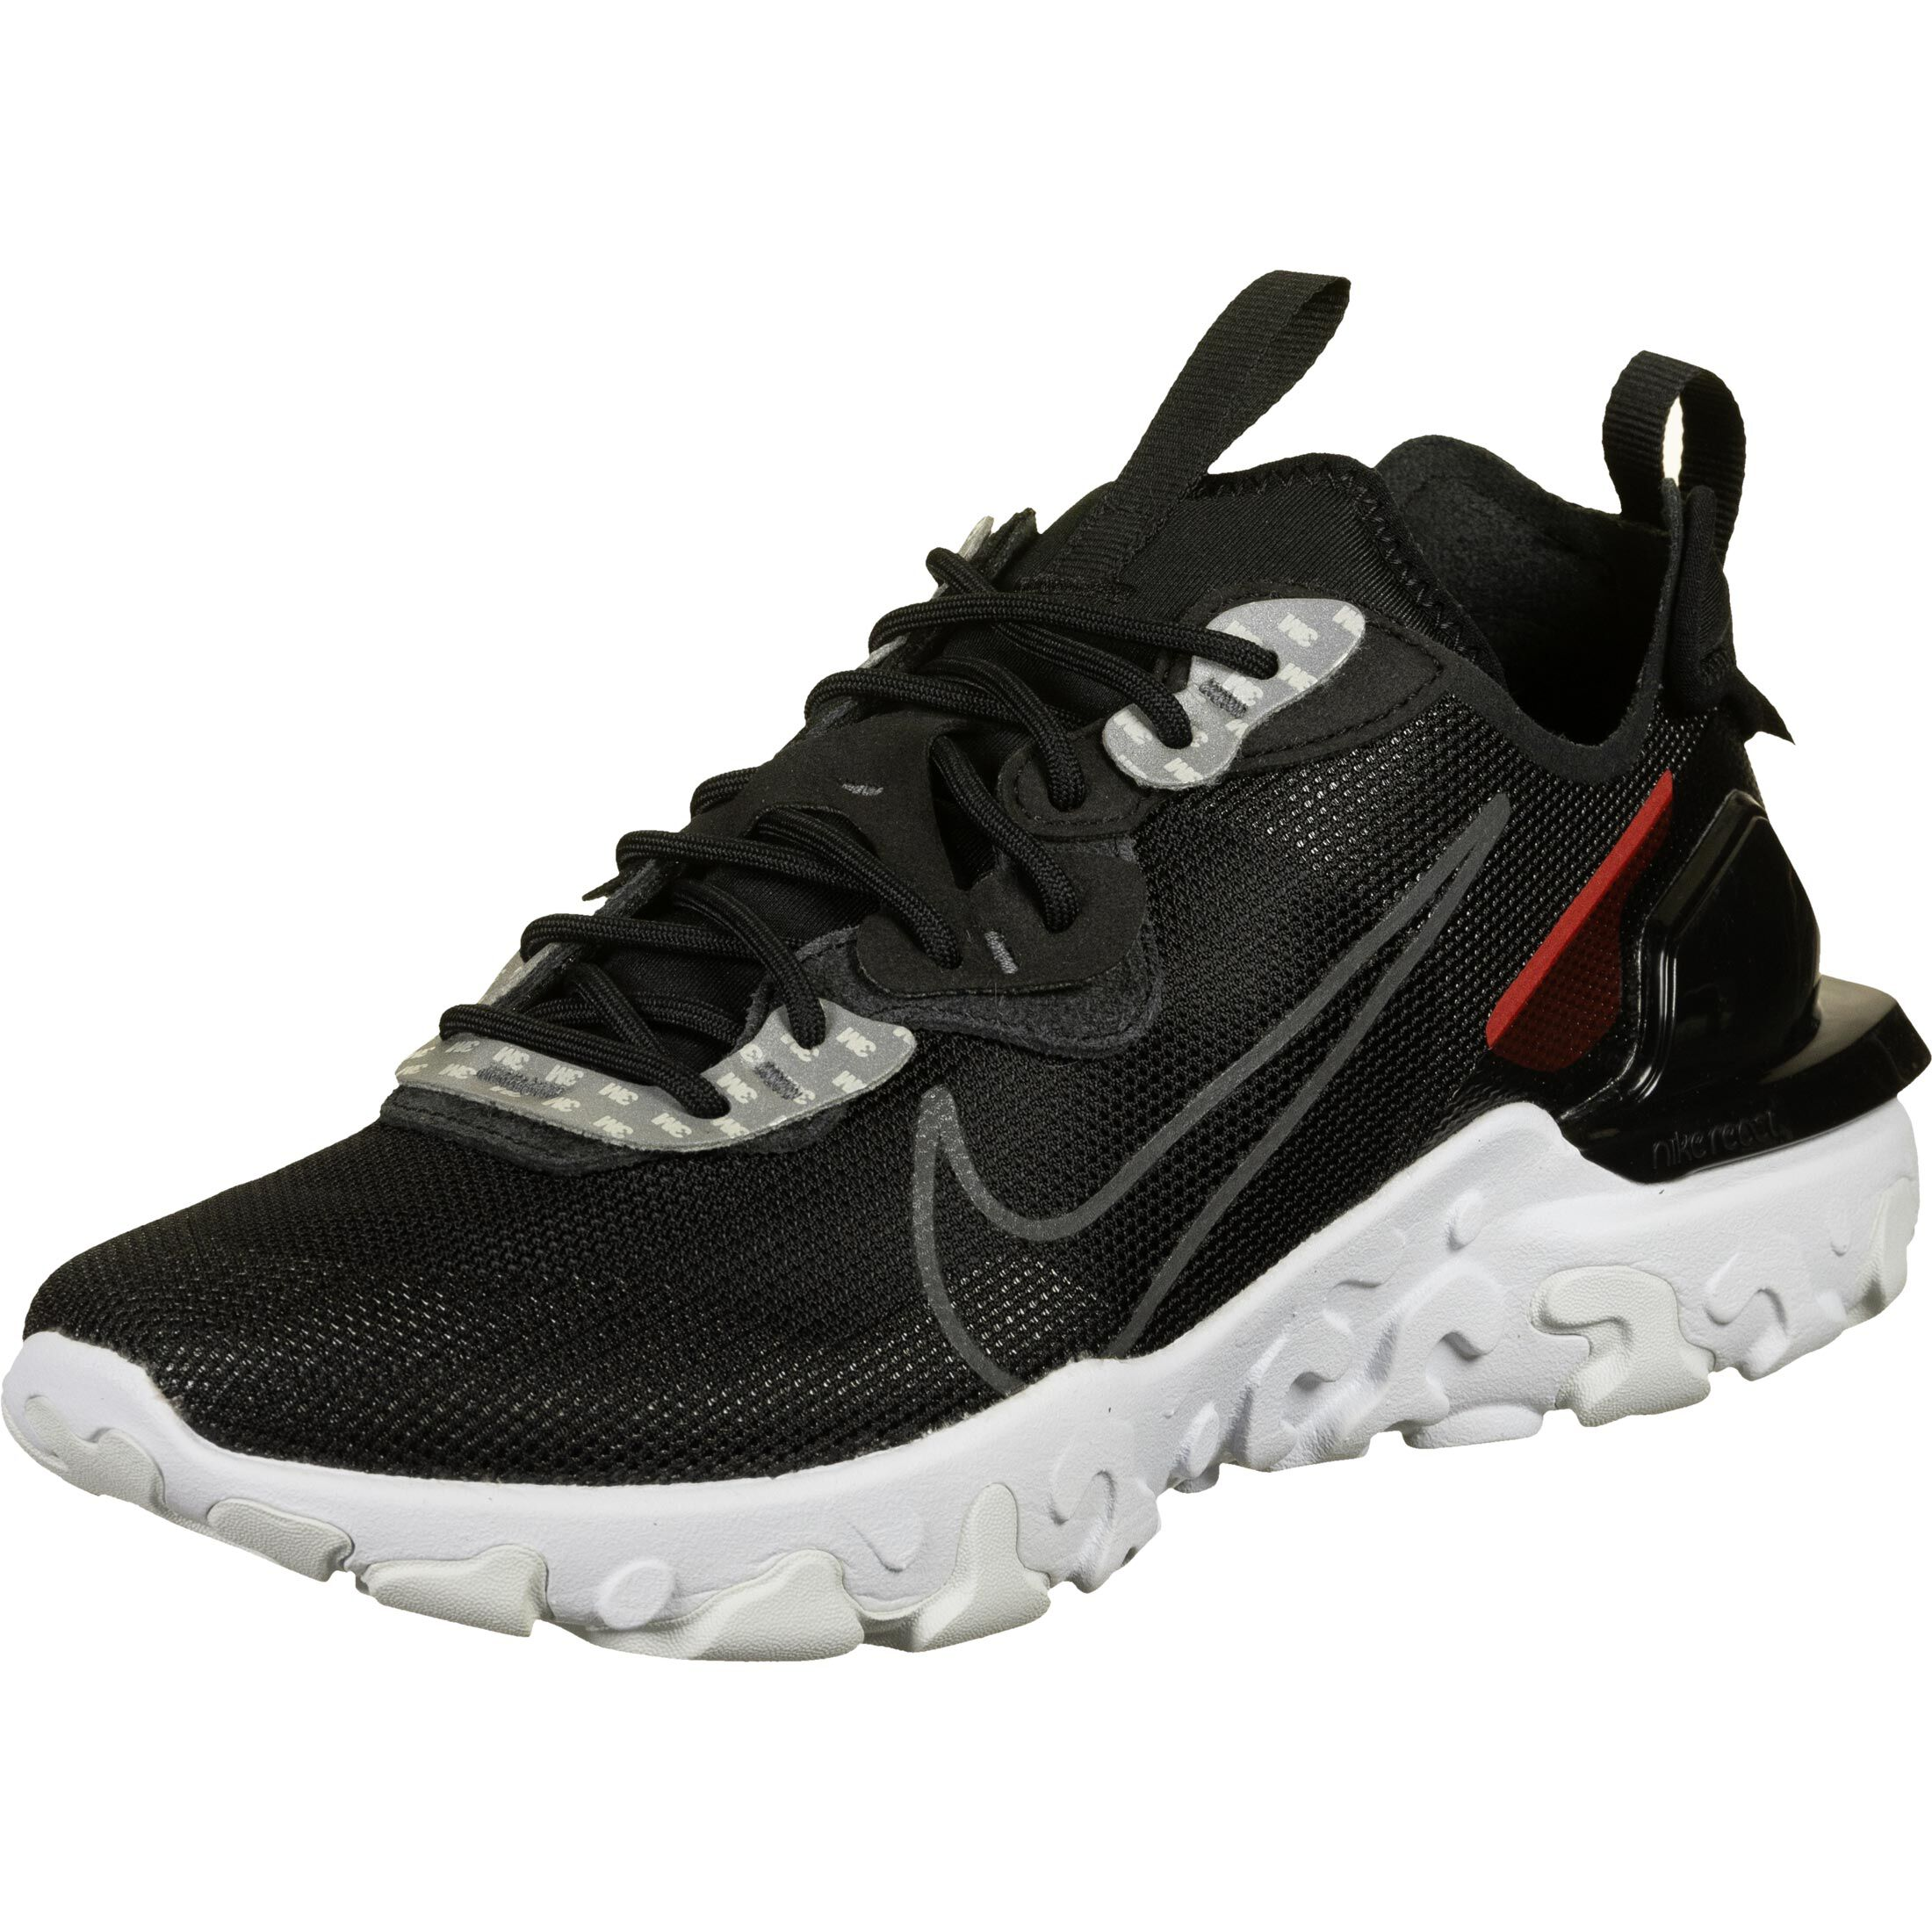 React Vision 3M - Baskets low - Hommes chez Stylefile